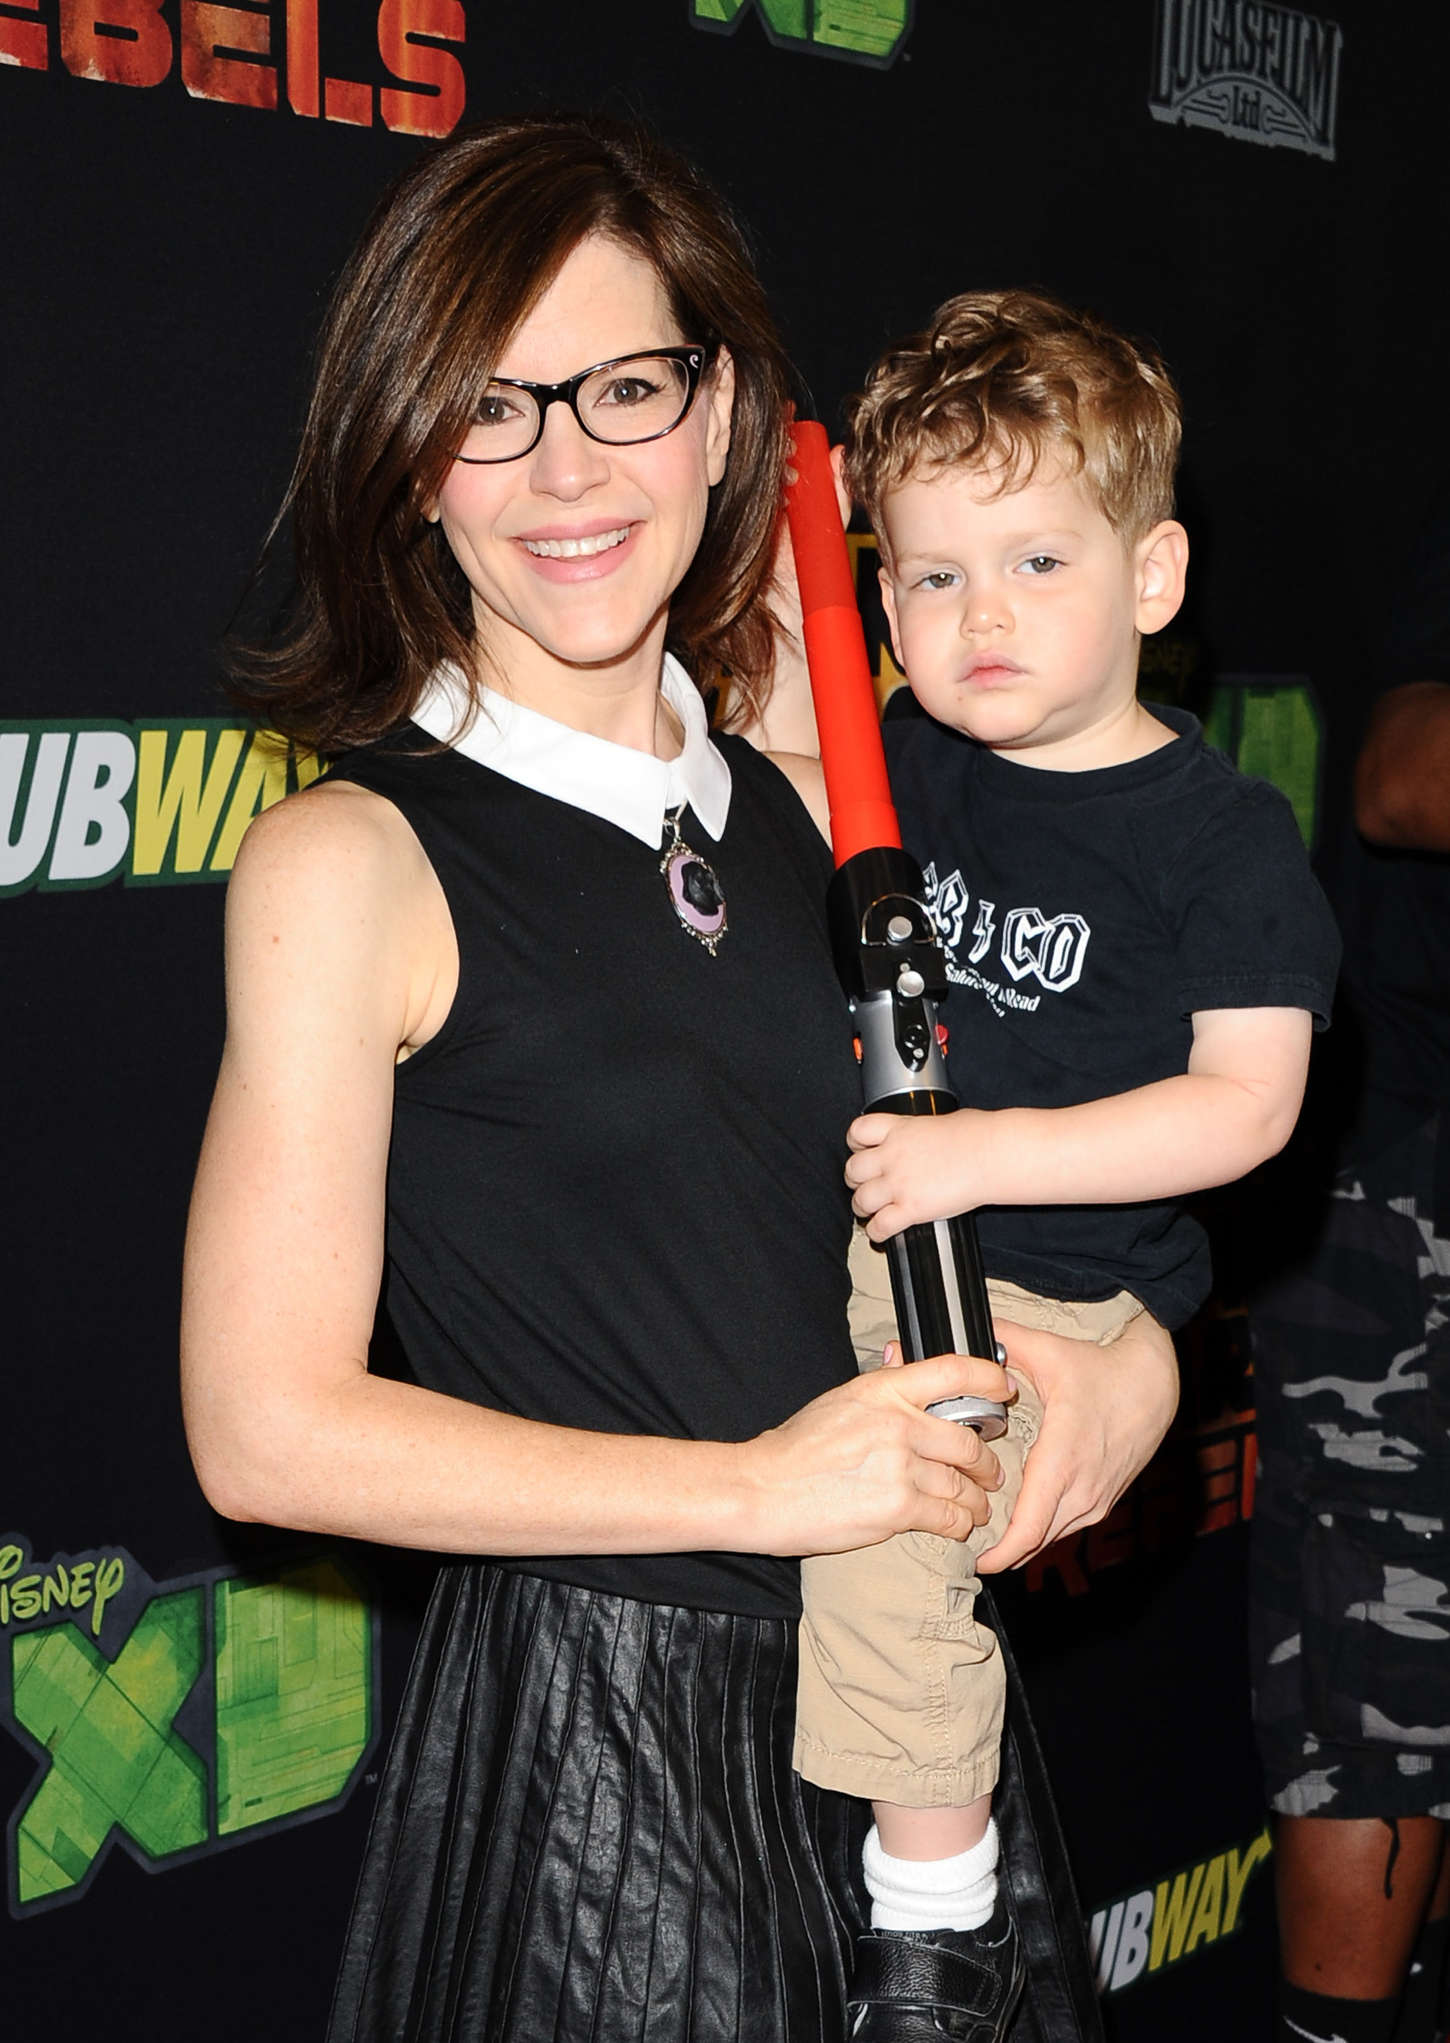 Lisa Loeb Premiere Star Wars Rebels in Century City